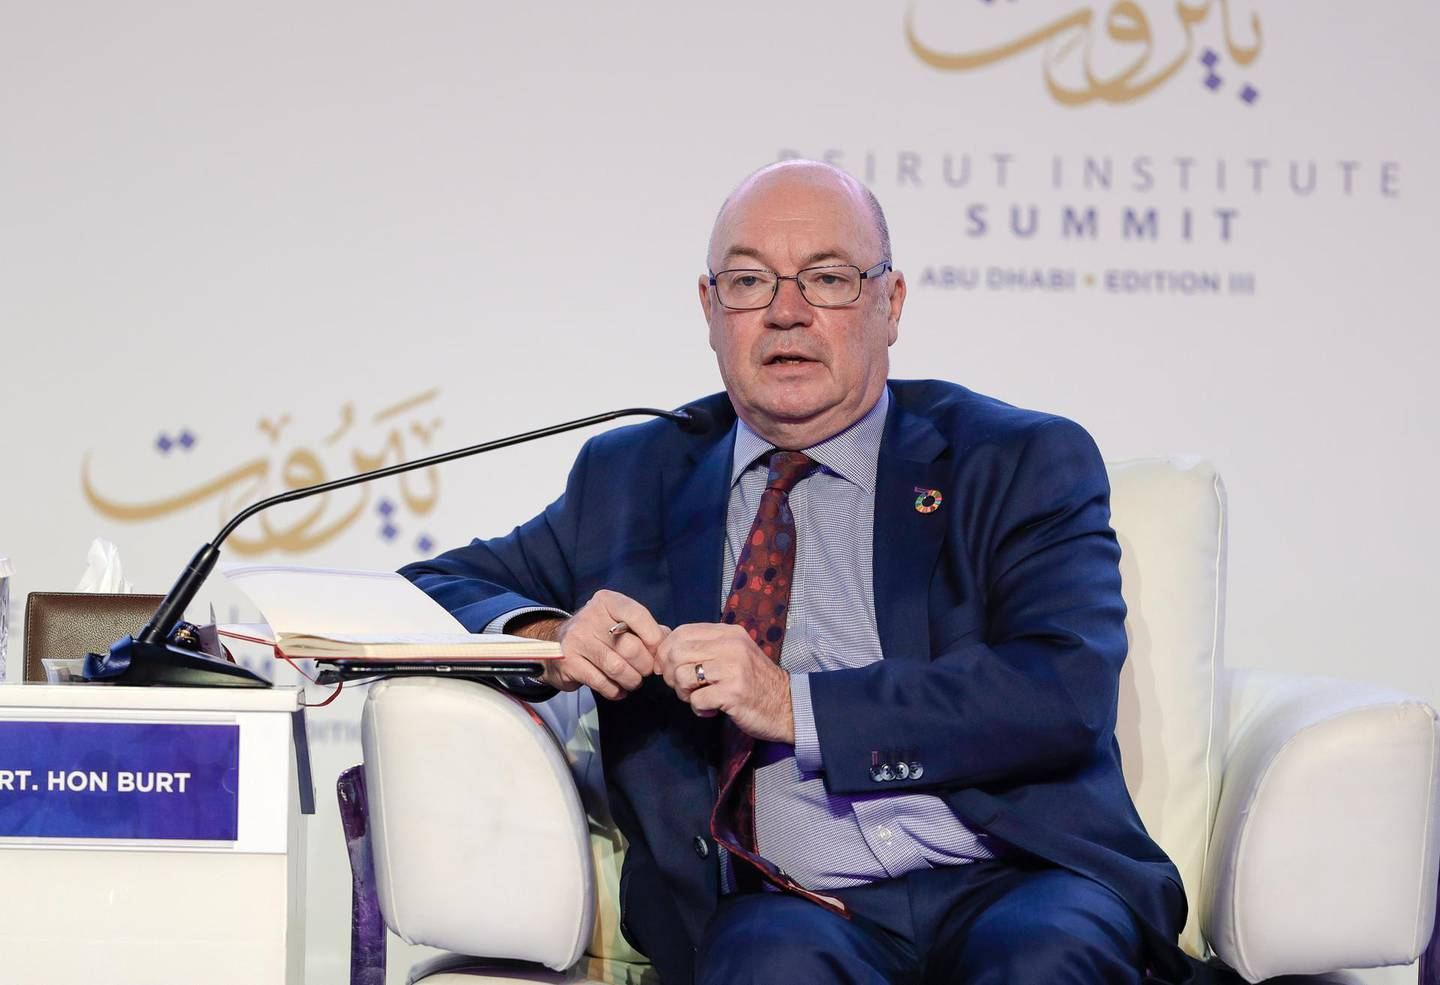 Abu Dhabi, United Arab Emirates, October 14, 2019.   Beirut Institute Summit at The St. Regis Abu Dhabi - Corniche. --     Will Europe Wither or Will it Weather the Gathering Storms?--The Rt Hon Alistair Burt, Former Minister of State for the Middle East at the Foreign and Commonwealth OfficeVictor Besa / The NationalSection:  NAReporter:  Dan Sanderson